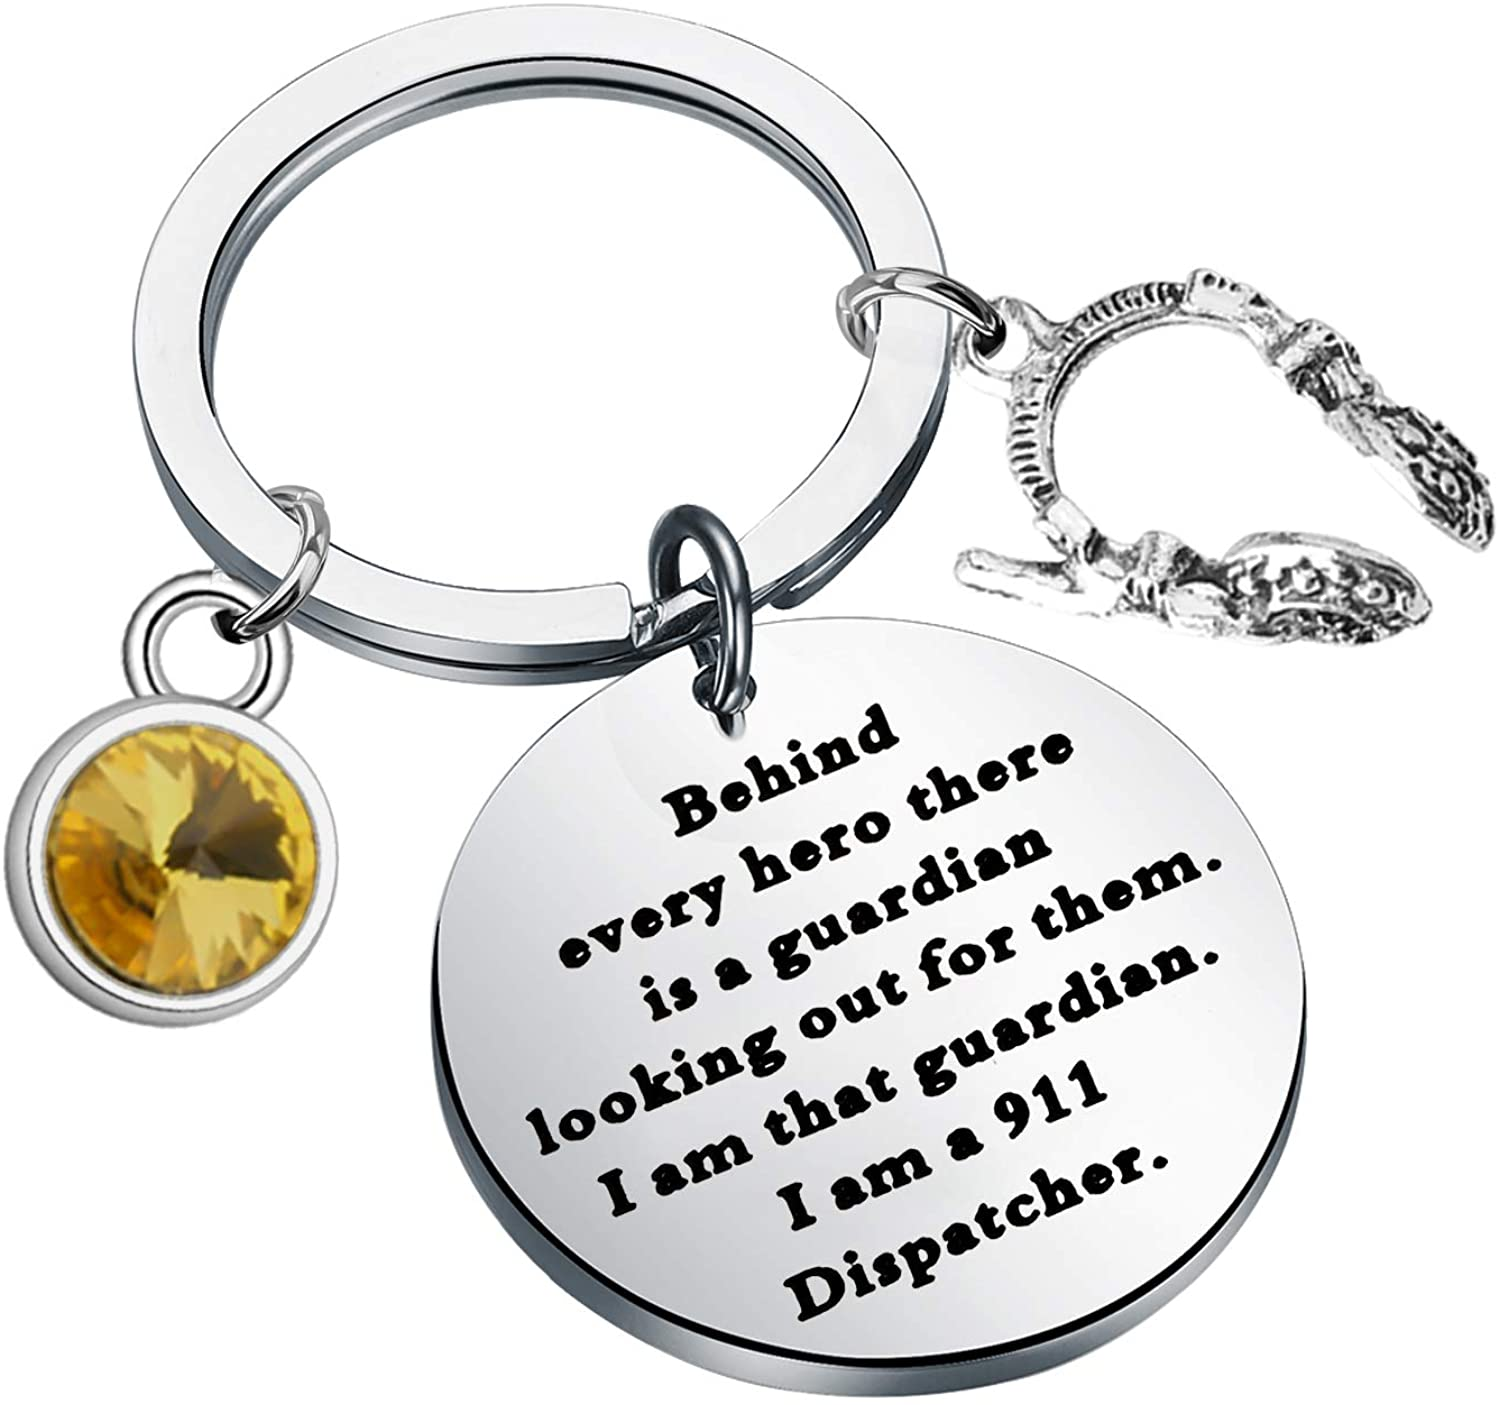 BAUNA 911 Dispatcher Keychain Emergency Operator Thank You Gift Behind Every Hero There is A Guardian Looking Out for Them Thin Yellow Line 911 Dispatcher Gifts